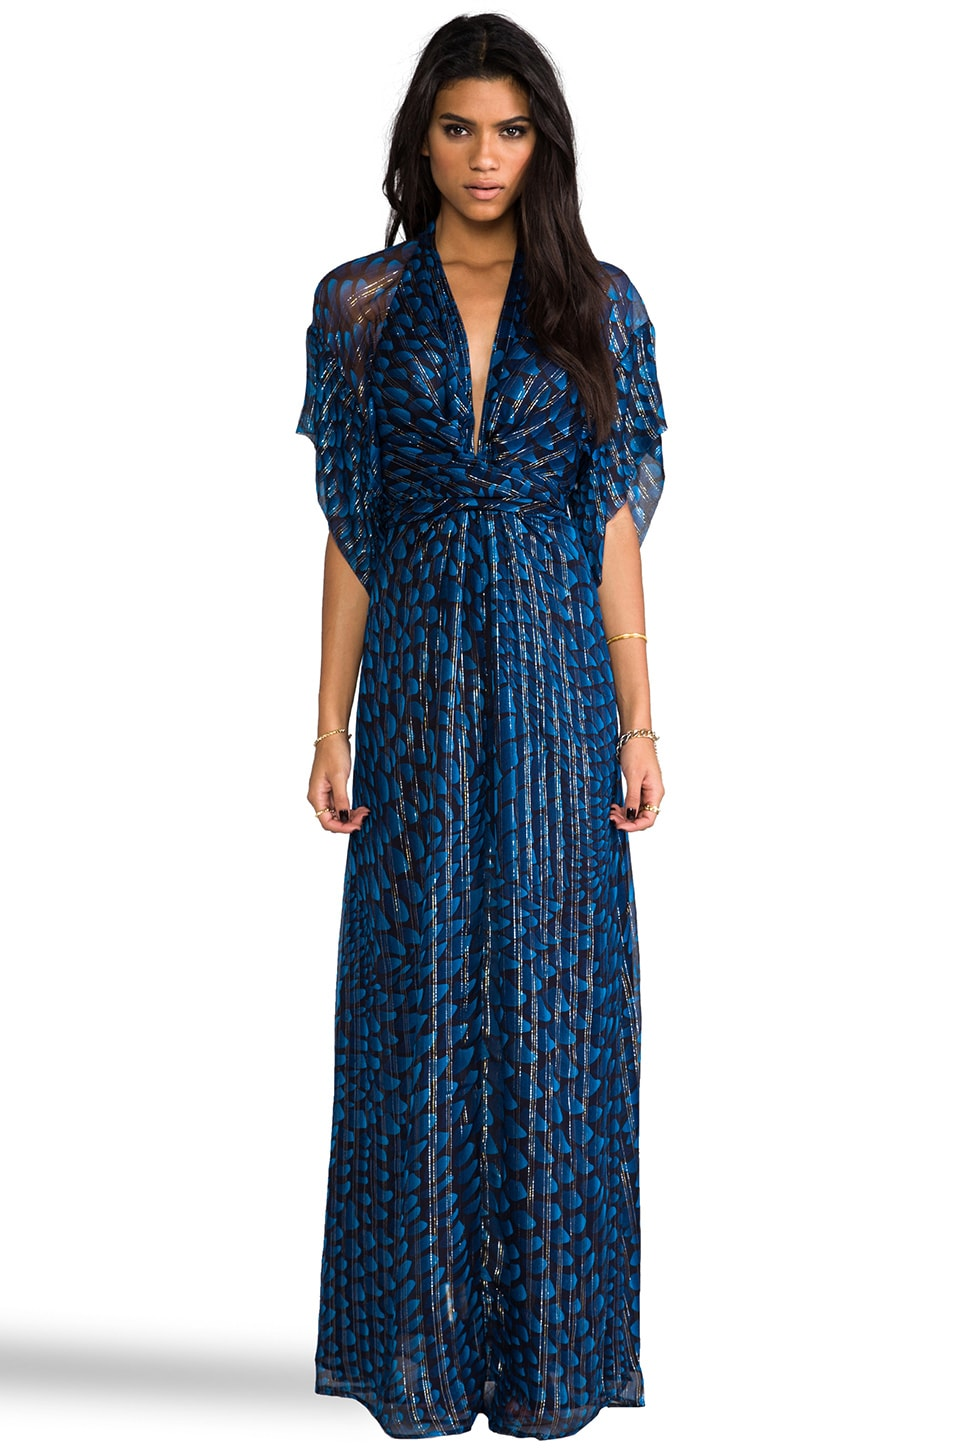 Issa Chiffon Metallic Short Sleeve Maxi Dress in Navy